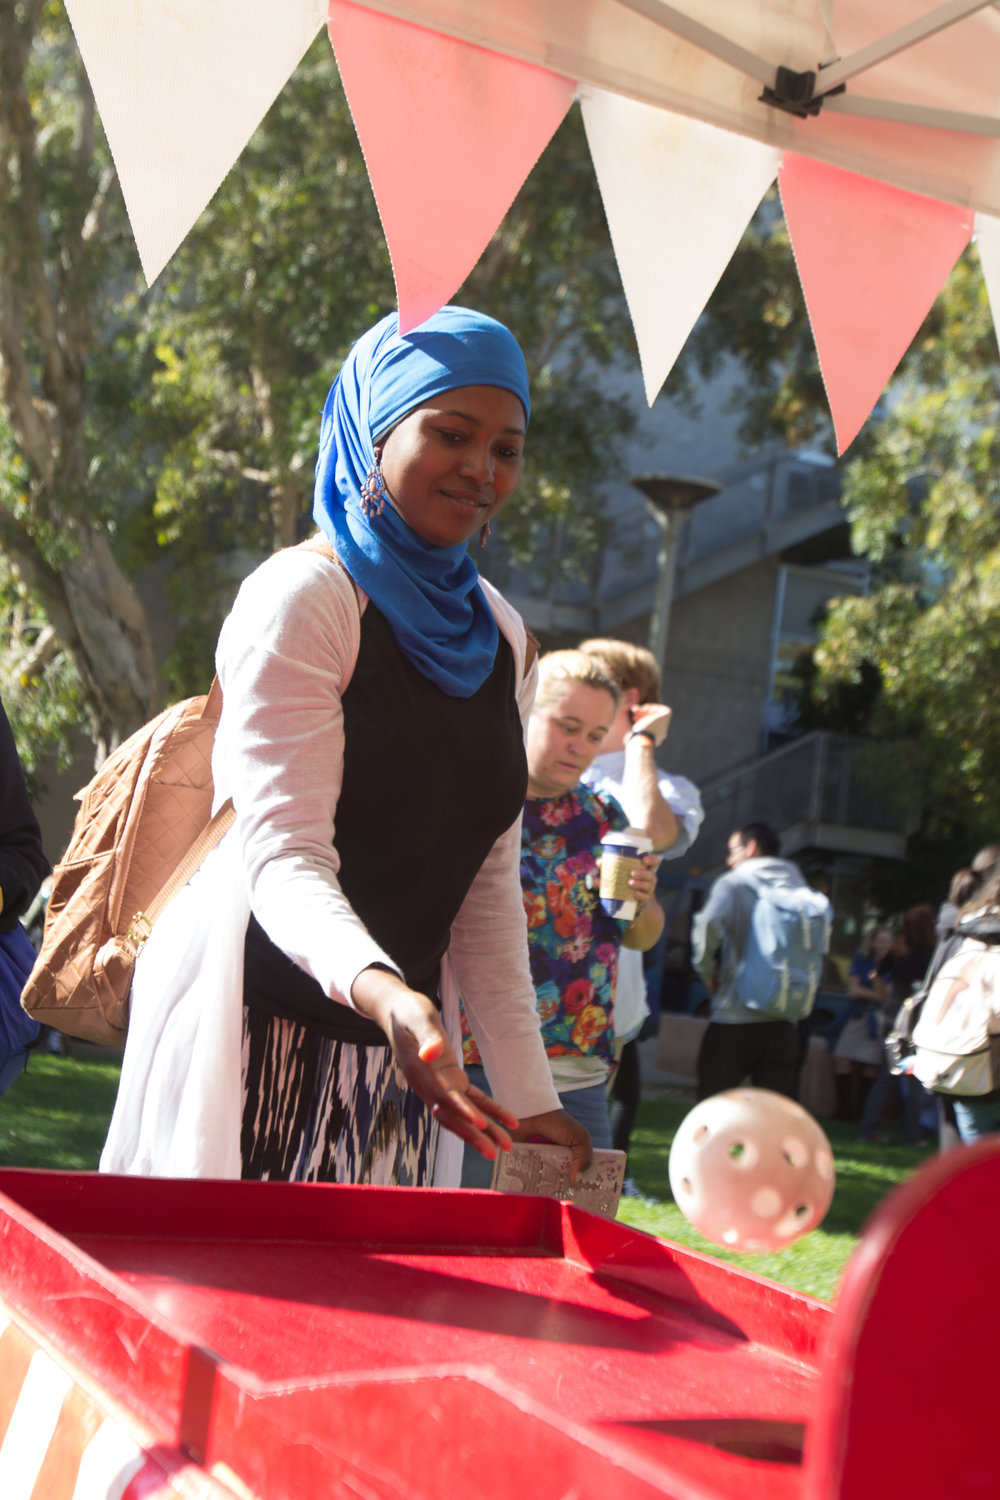 First year student, Sadia playing skee ball for the Active Minds event outside the quad area located at Santa Monica College in Santa Monica California on Tuesday November 13th, 2018. (Jacob Victorica/ Corsair Photo)